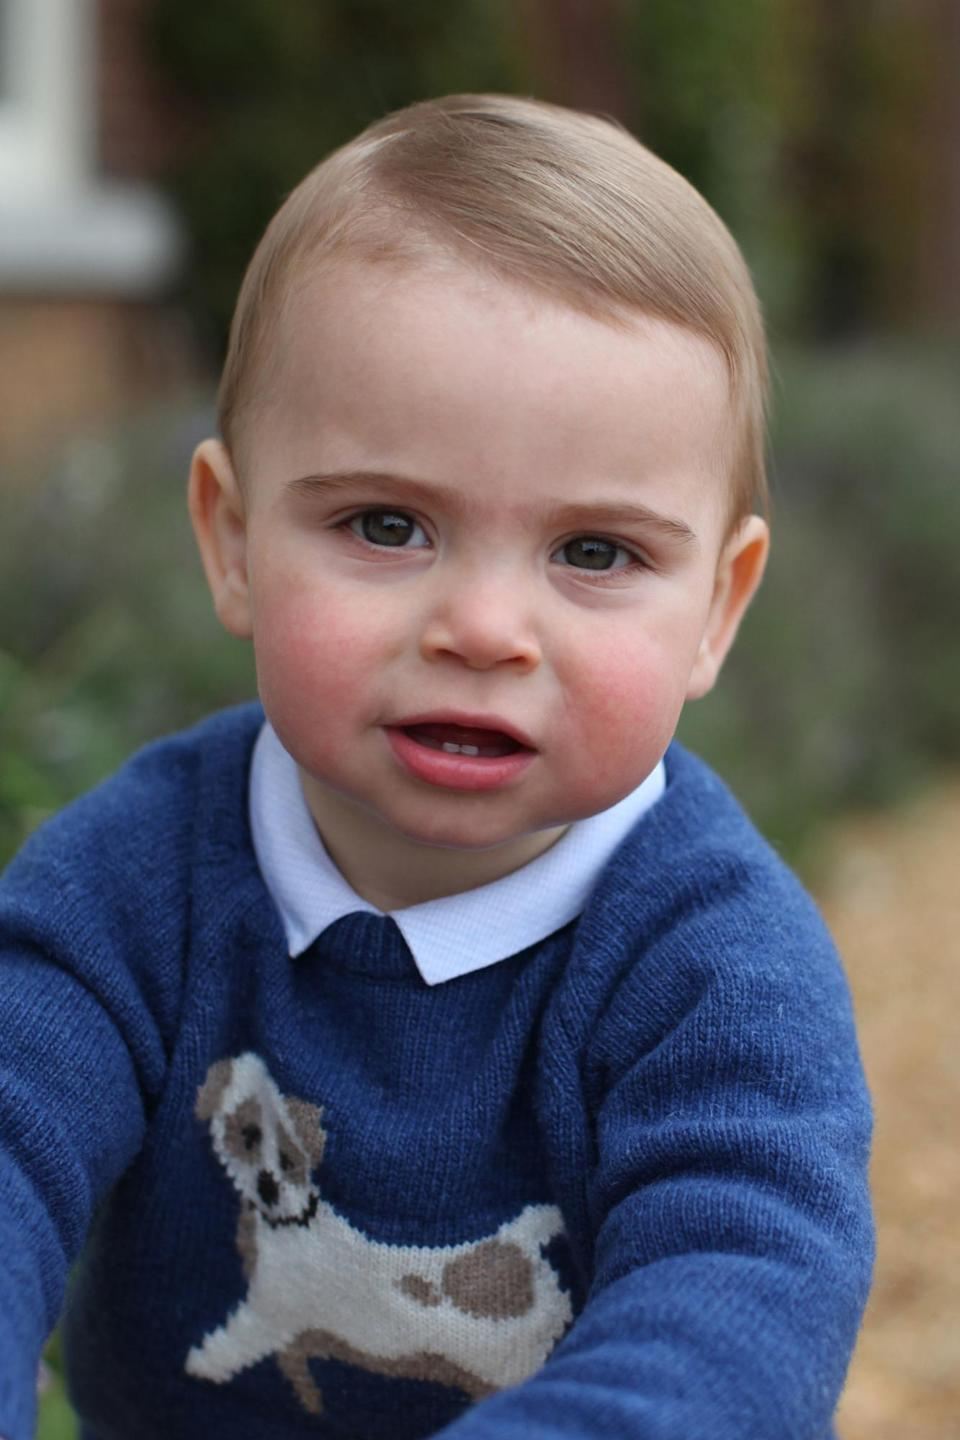 Prince Louis posed for his 1st birthday pictures with the blue Trotters jumper on. [Photo: PA]